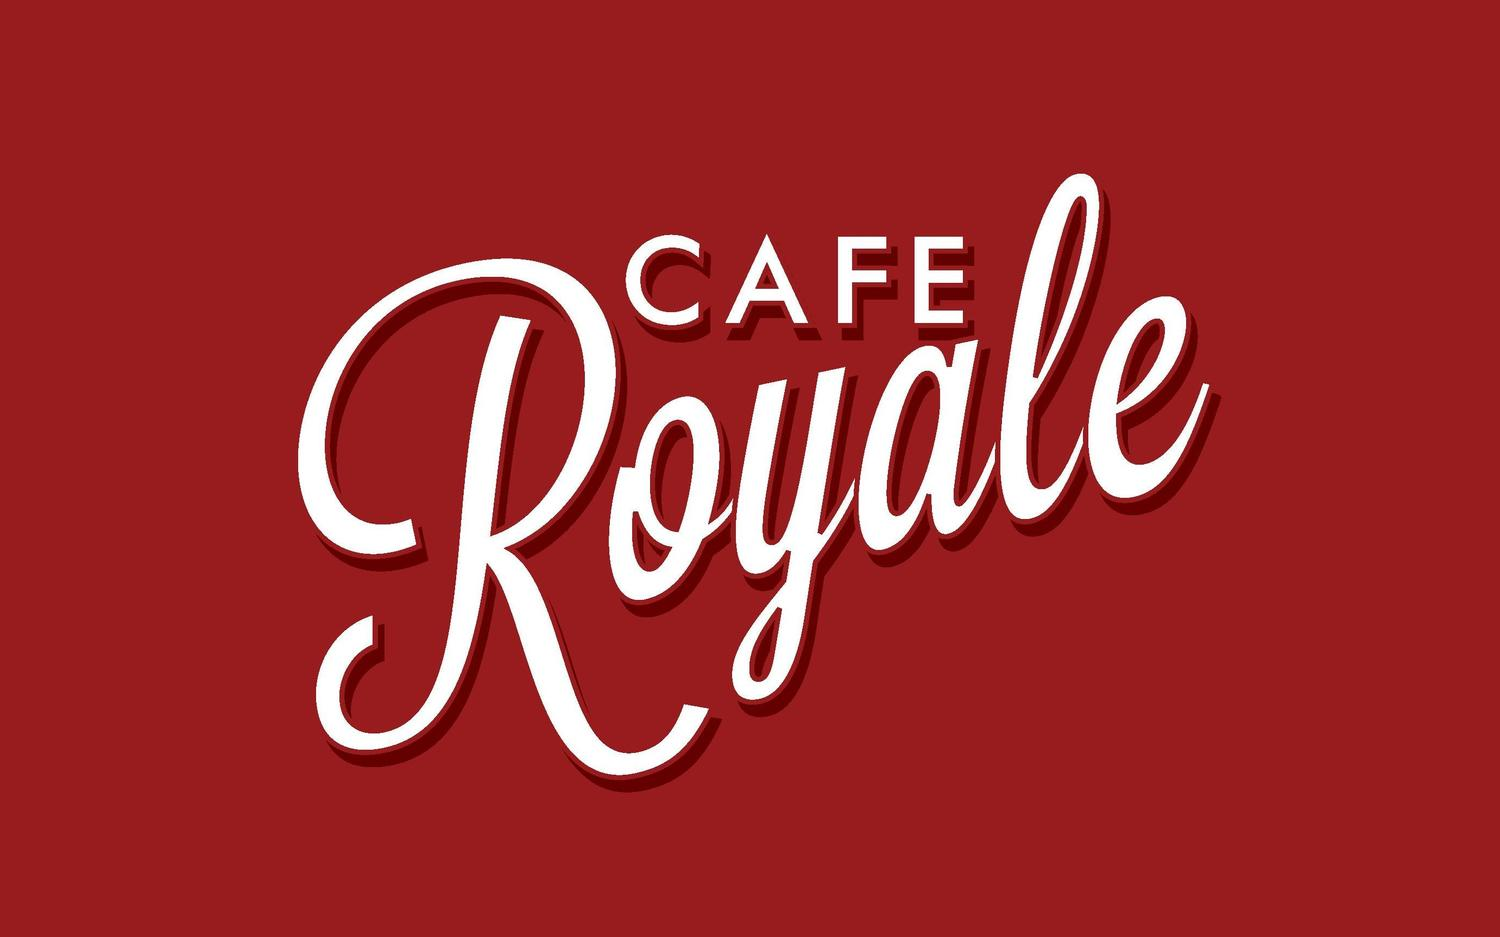 Cafe Royale